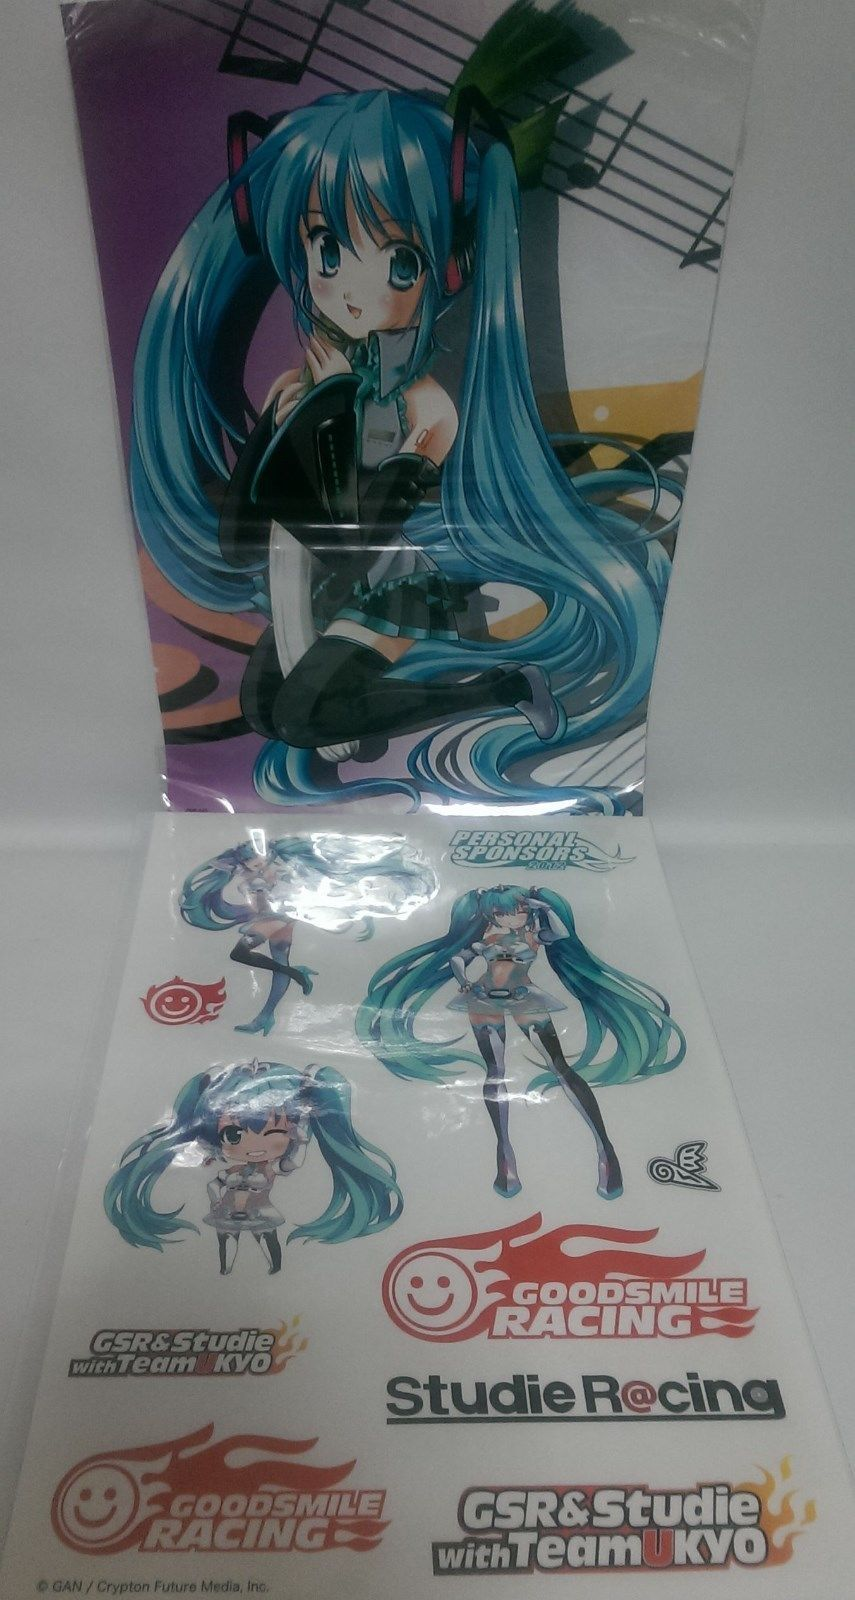 Hatsune Miku Big Sticker Gsr Figma 2012 And 50 Similar Items Figure Spring Clothes Taito Bonus Poster